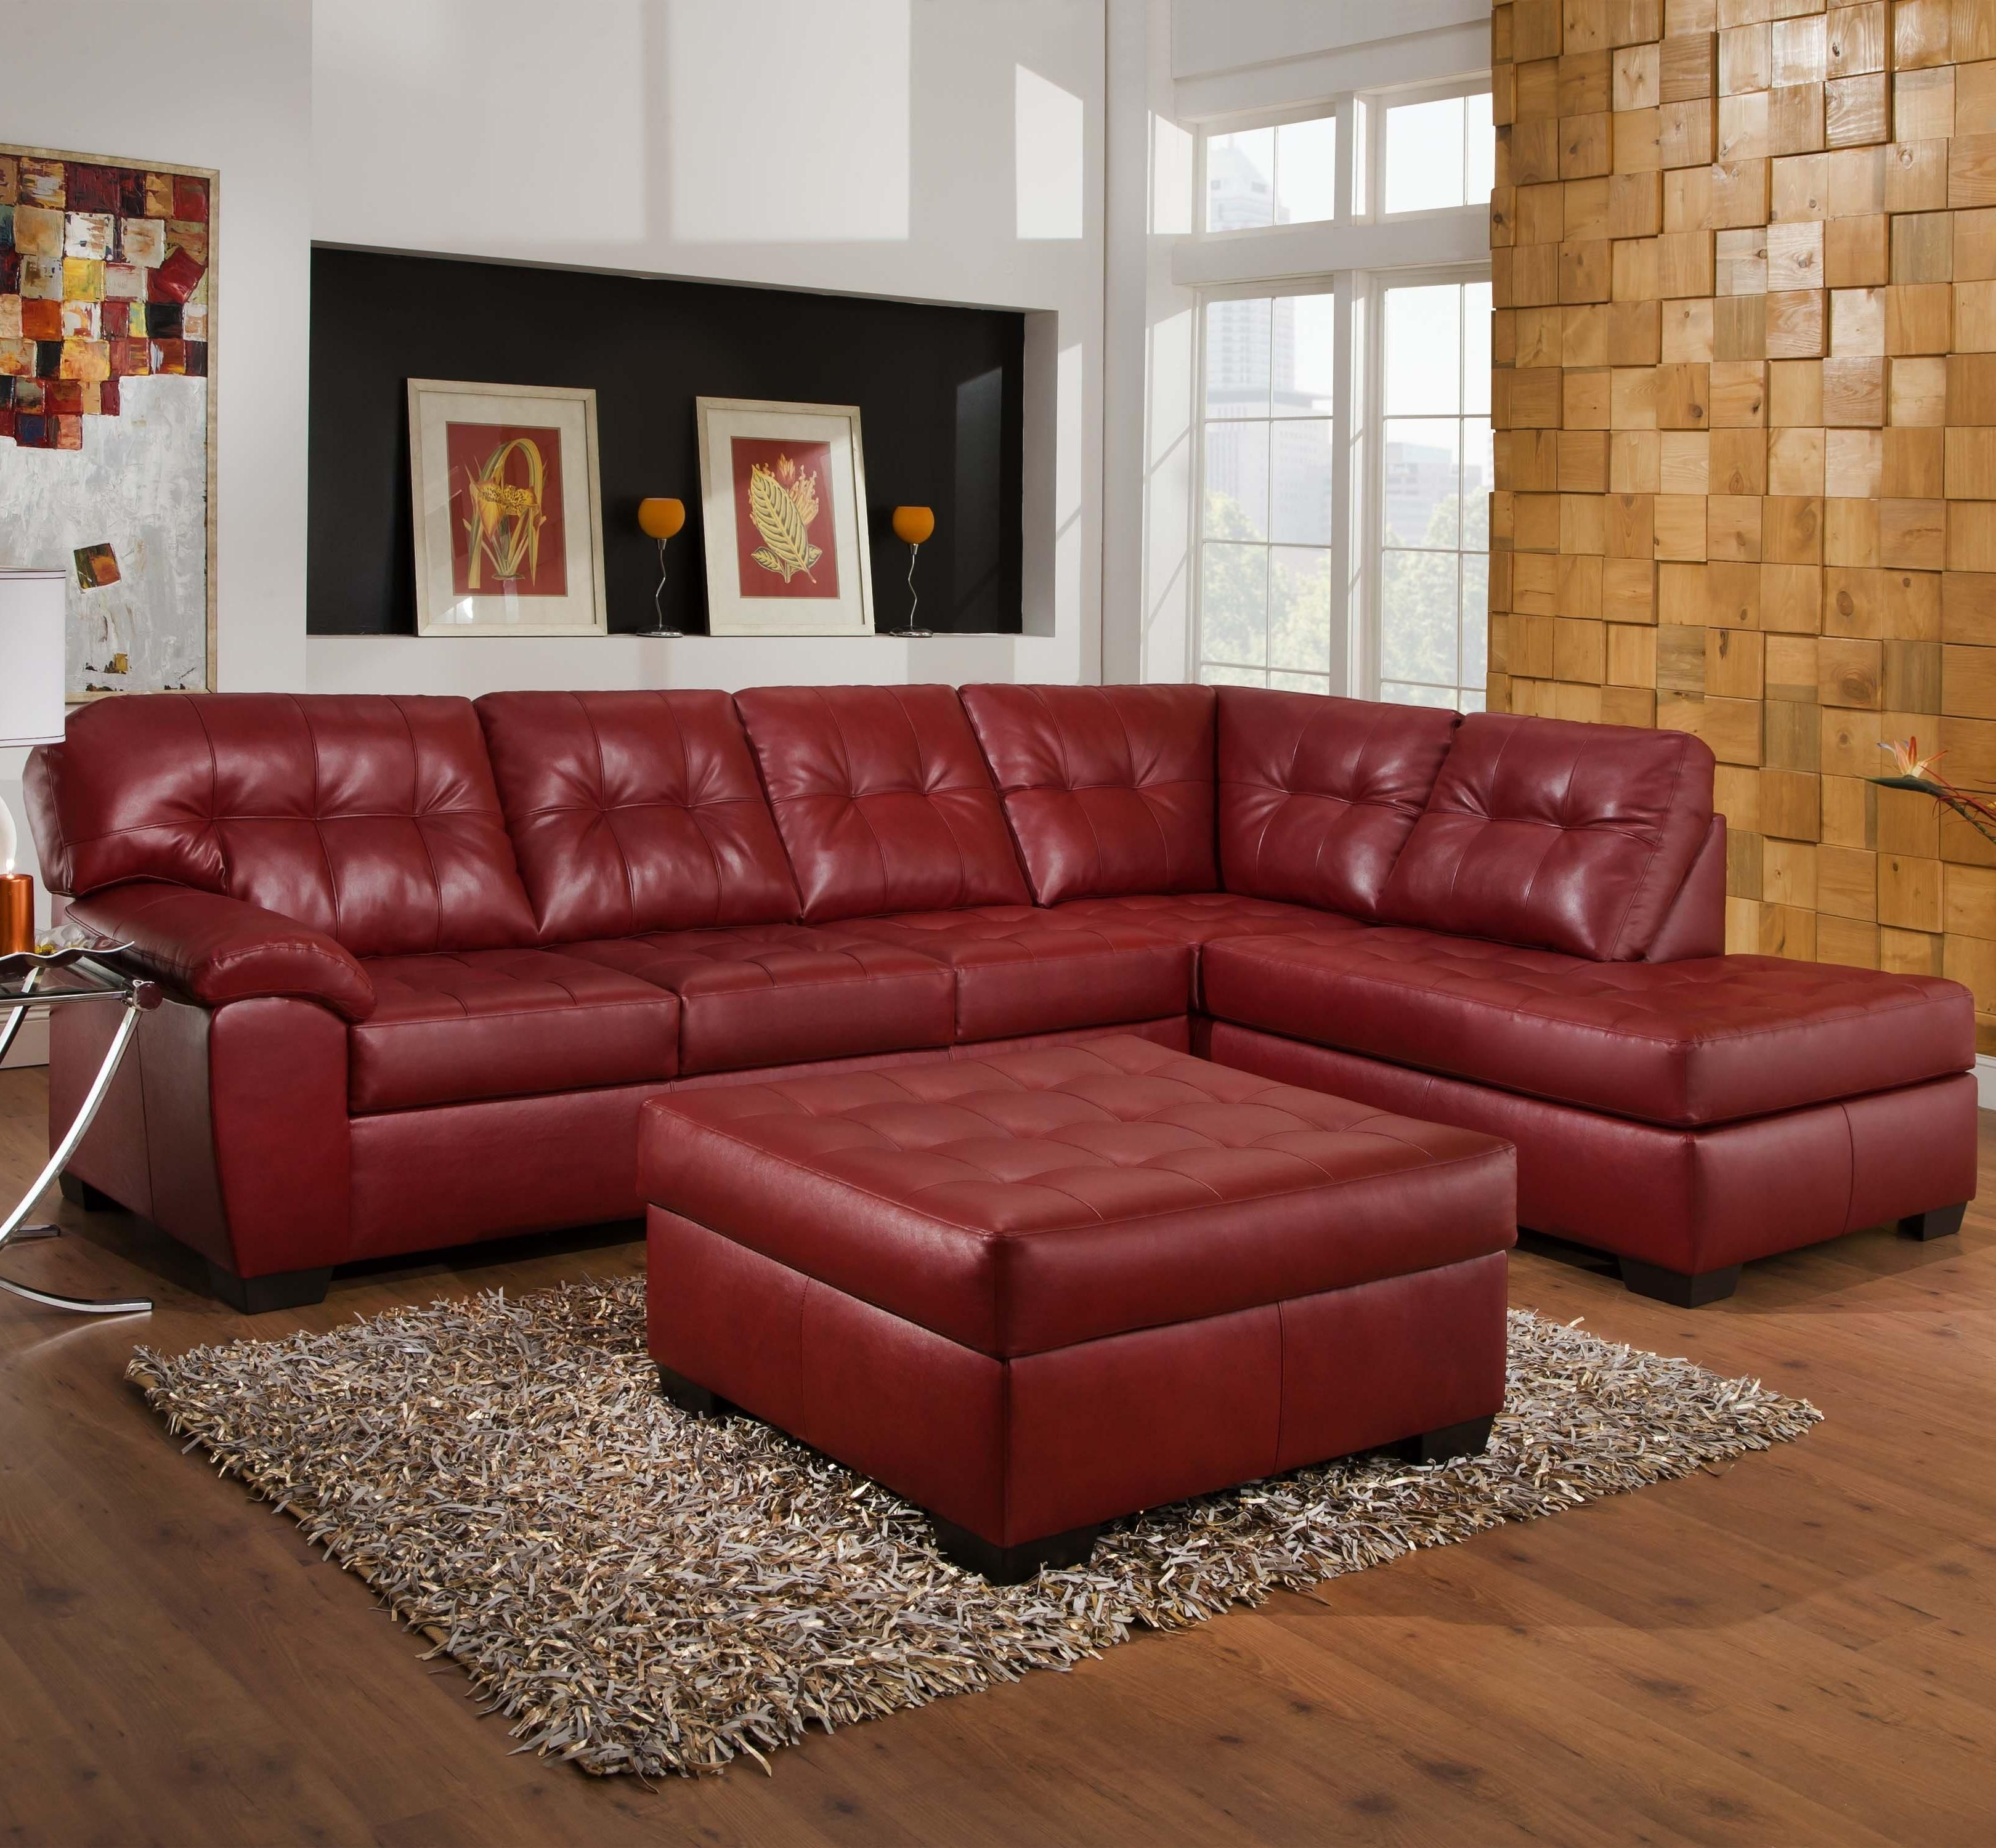 9569 2 Piece Sectional With Tufted Seats & Backsimmons With Regard To Memphis Sectional Sofas (Photo 3 of 10)